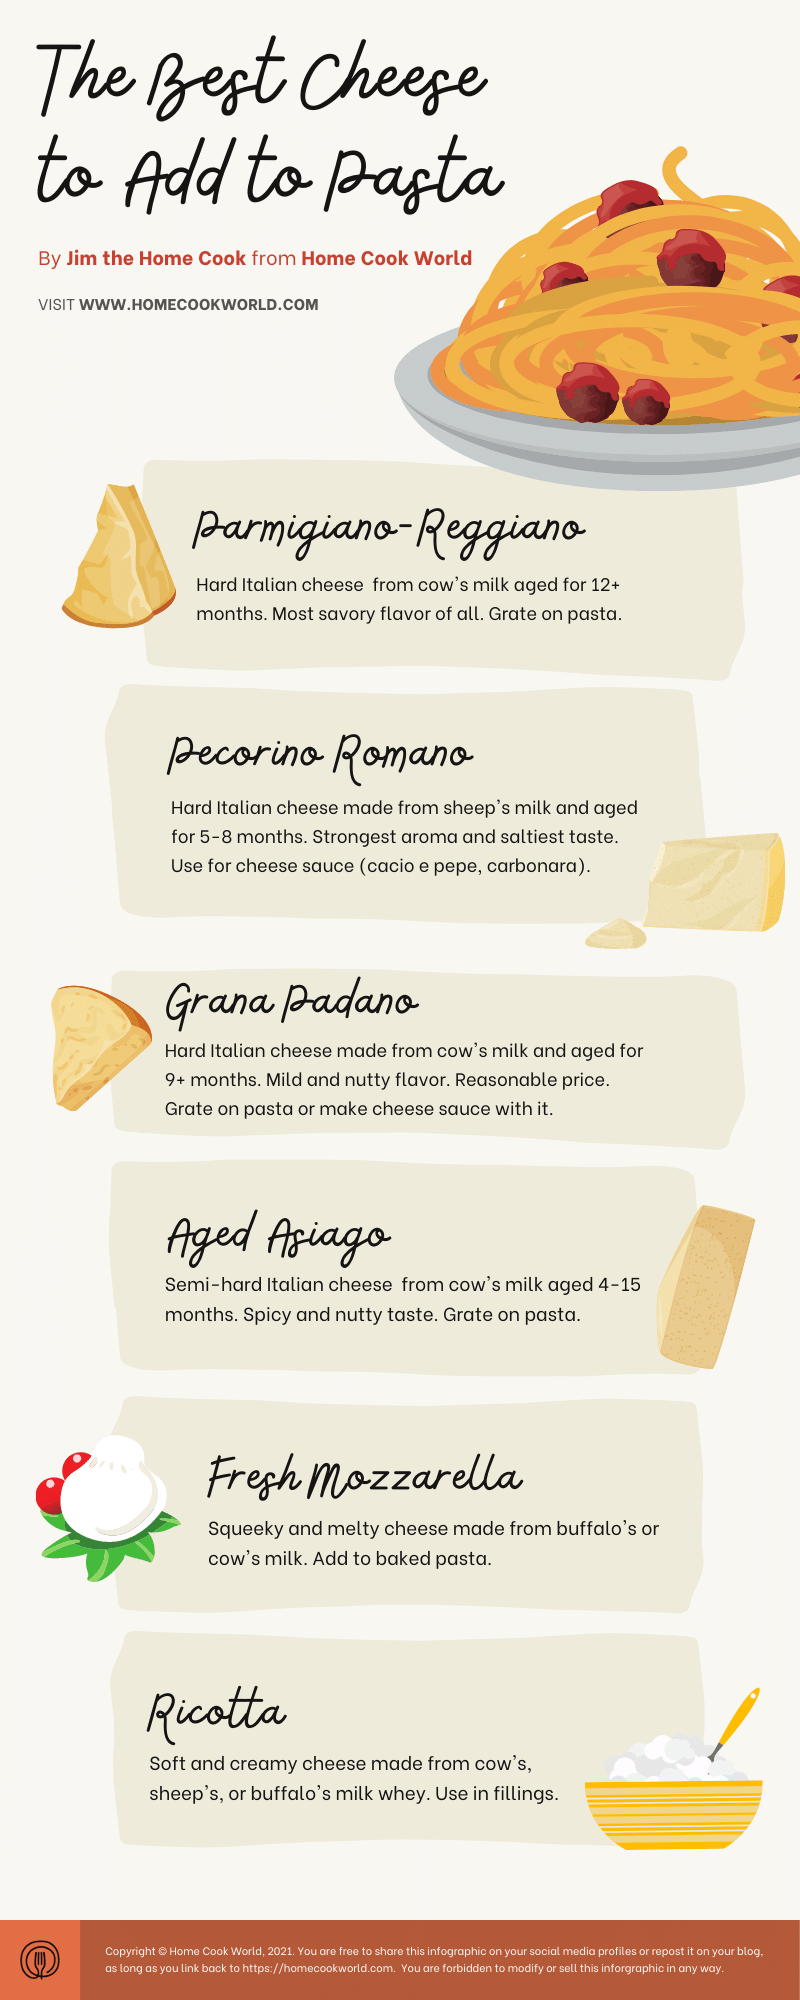 The best cheese to add to pasta (infographic)